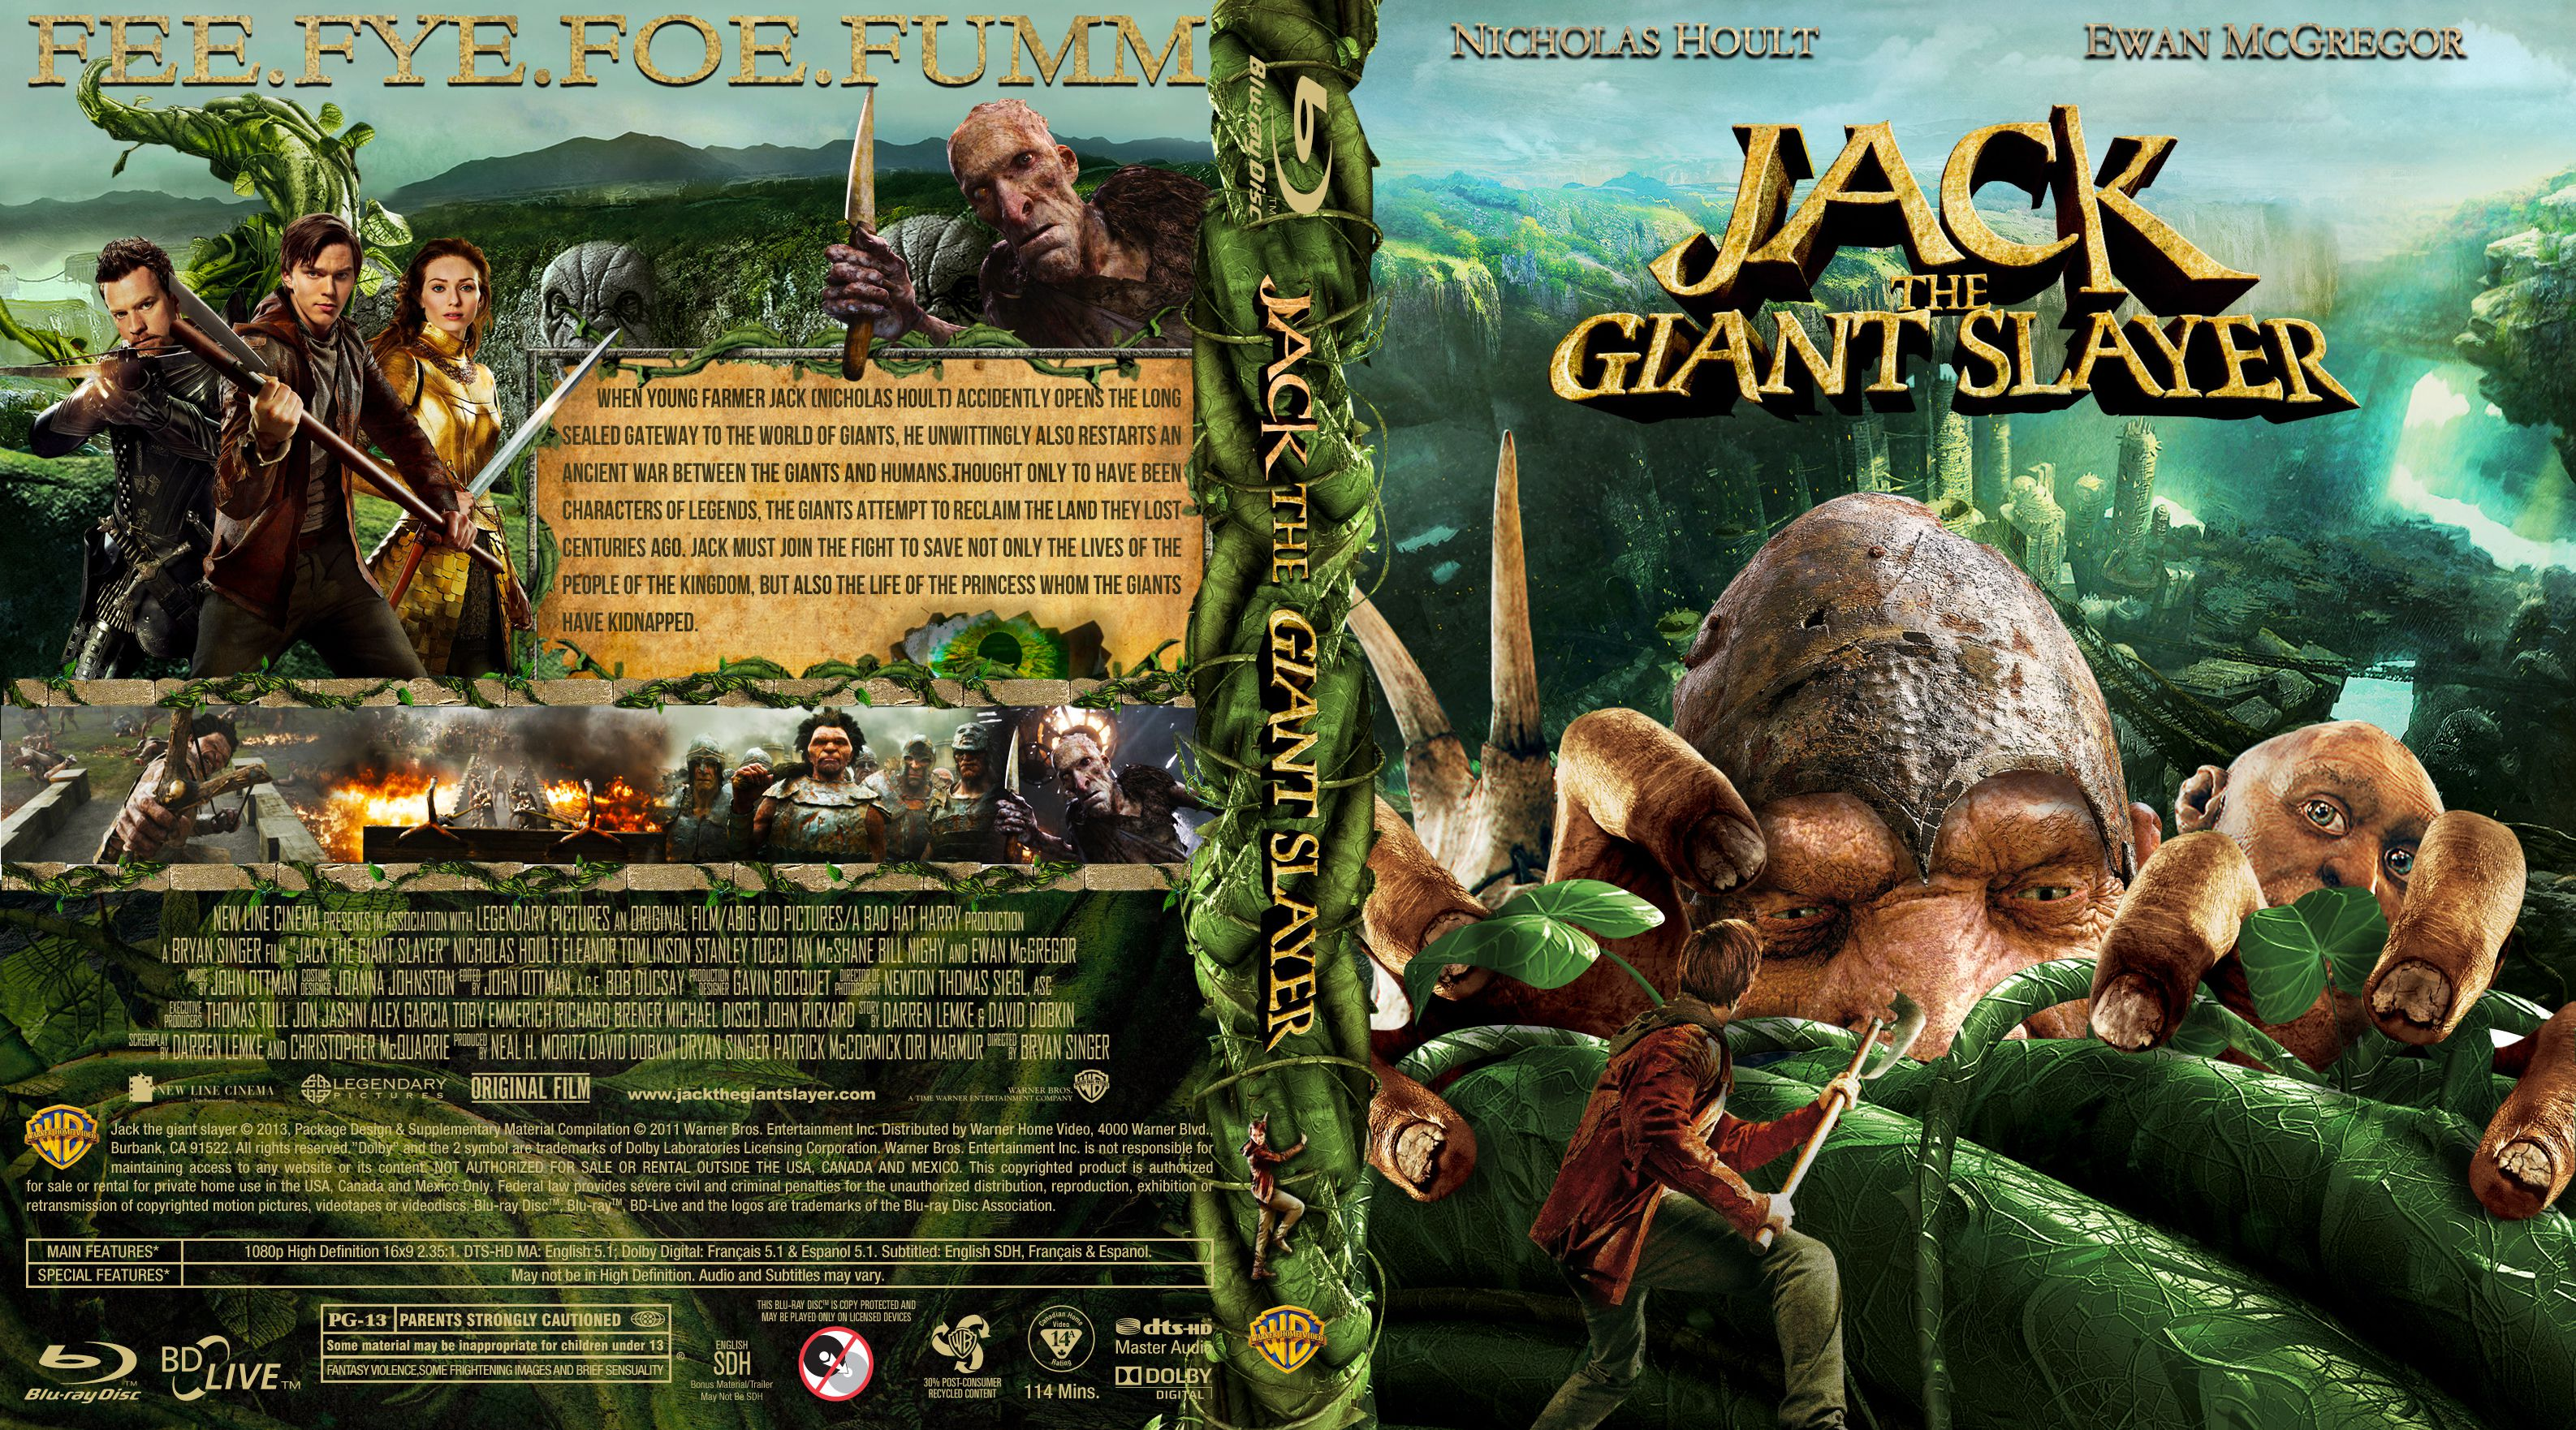 Capa Bluray Jack The Giant Slayer